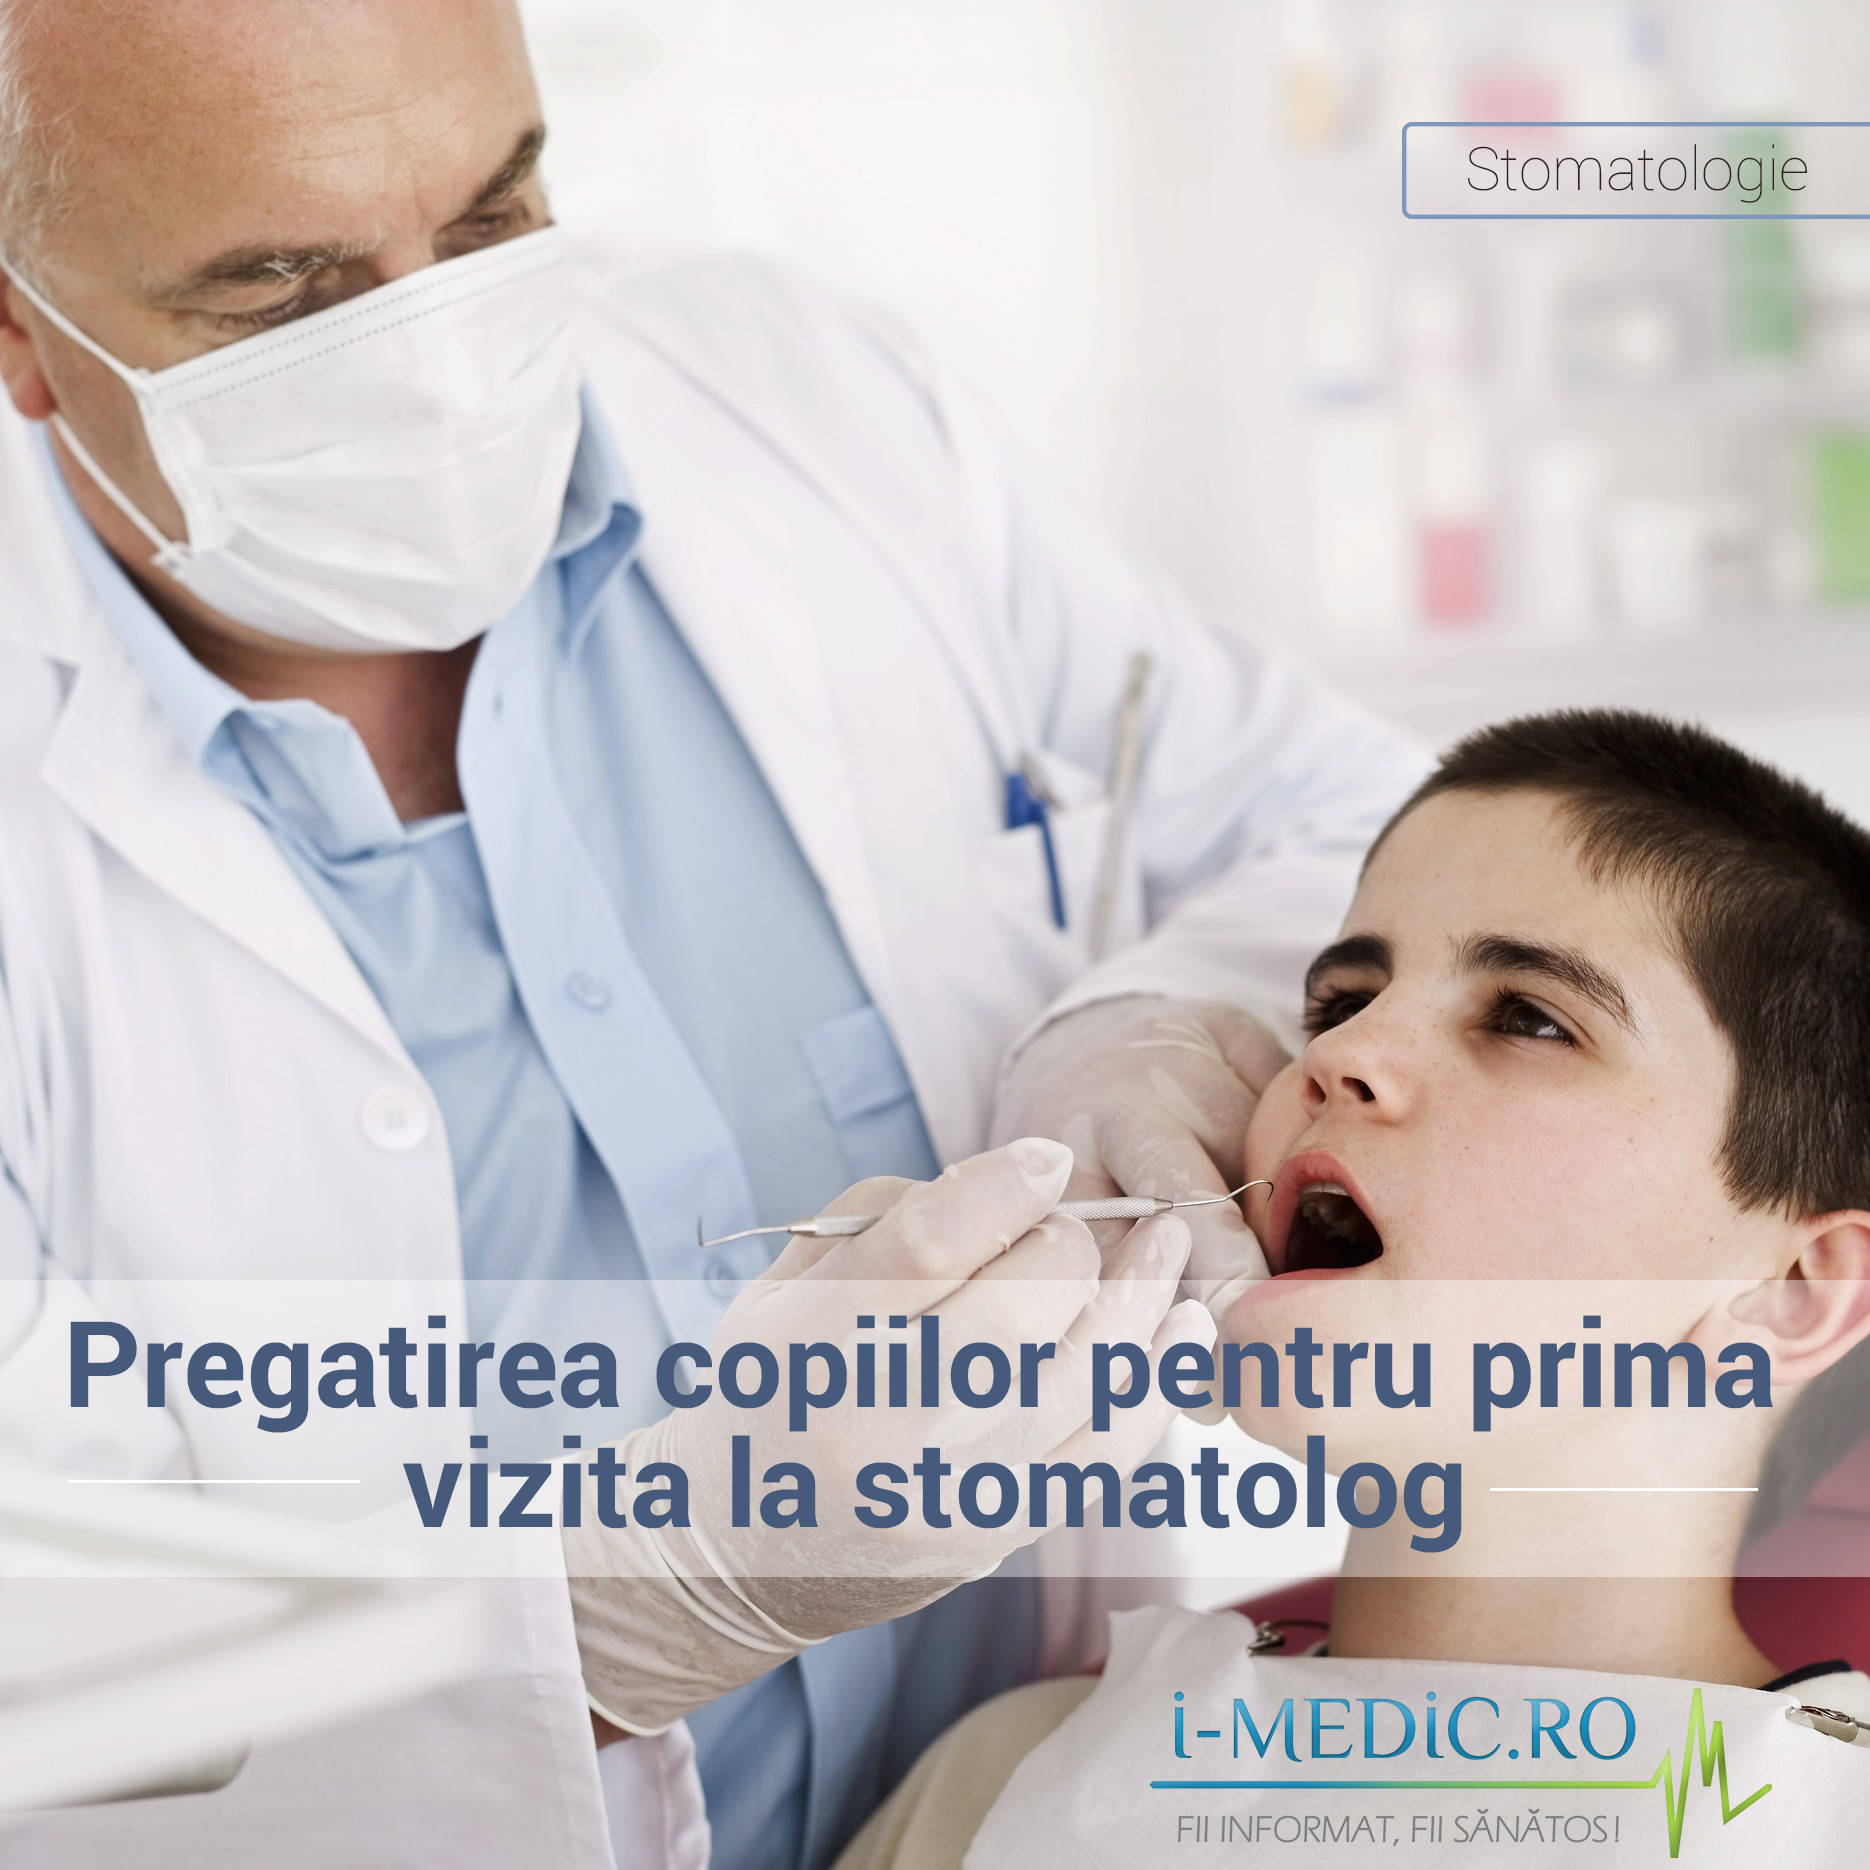 Pin by i-medic ro on Stomatologie | Dental services, Best